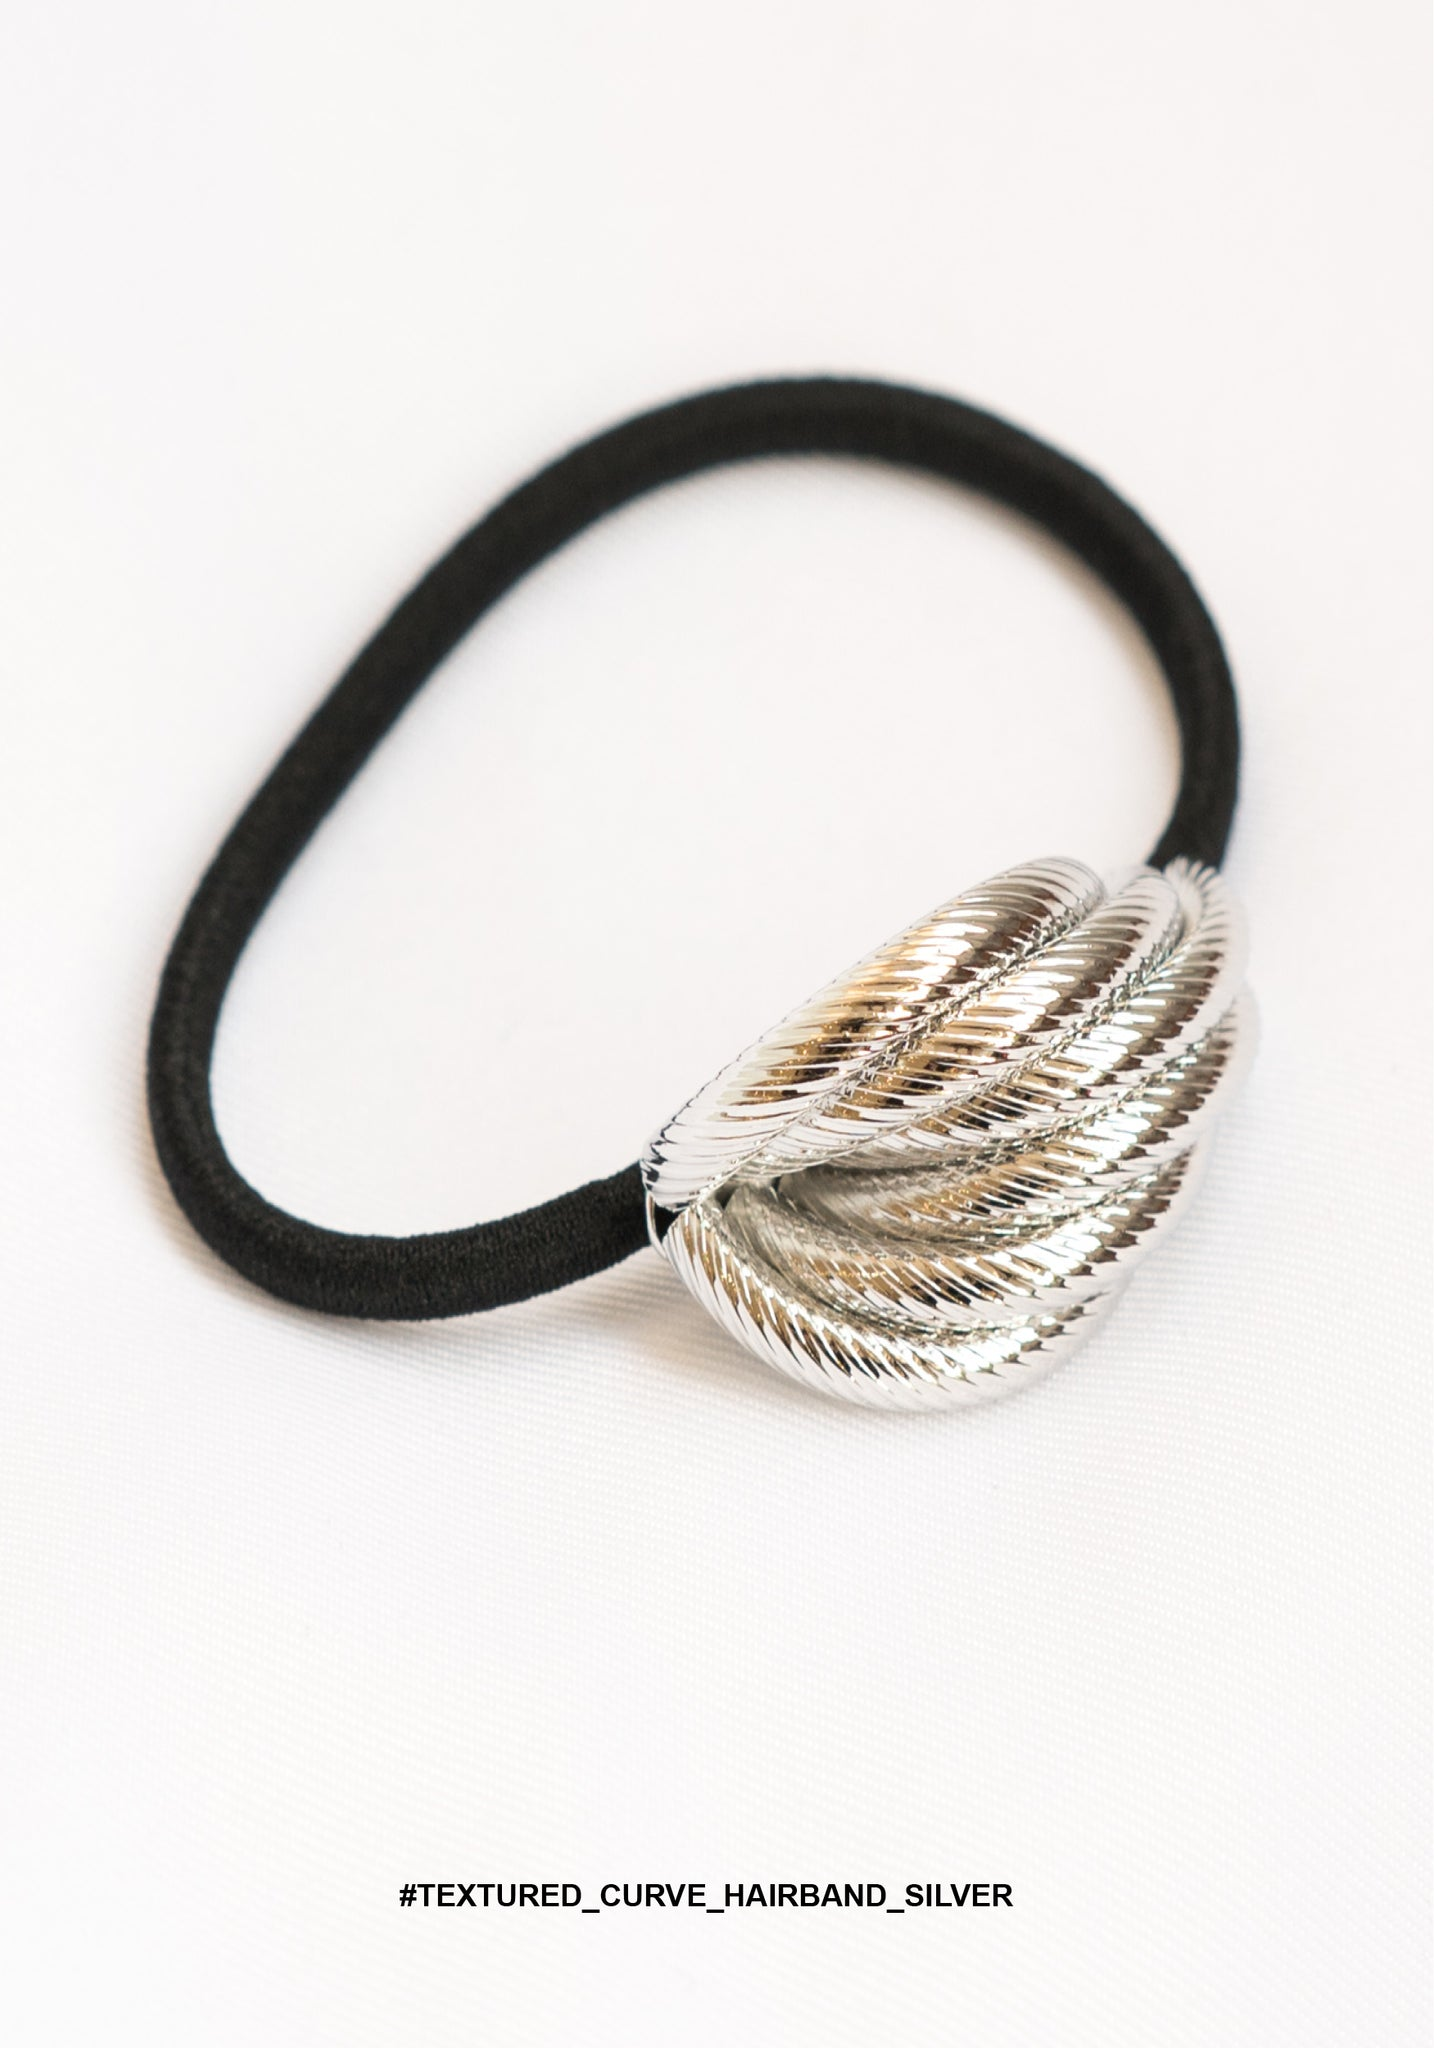 Textured Curve Hairband Silver - whoami